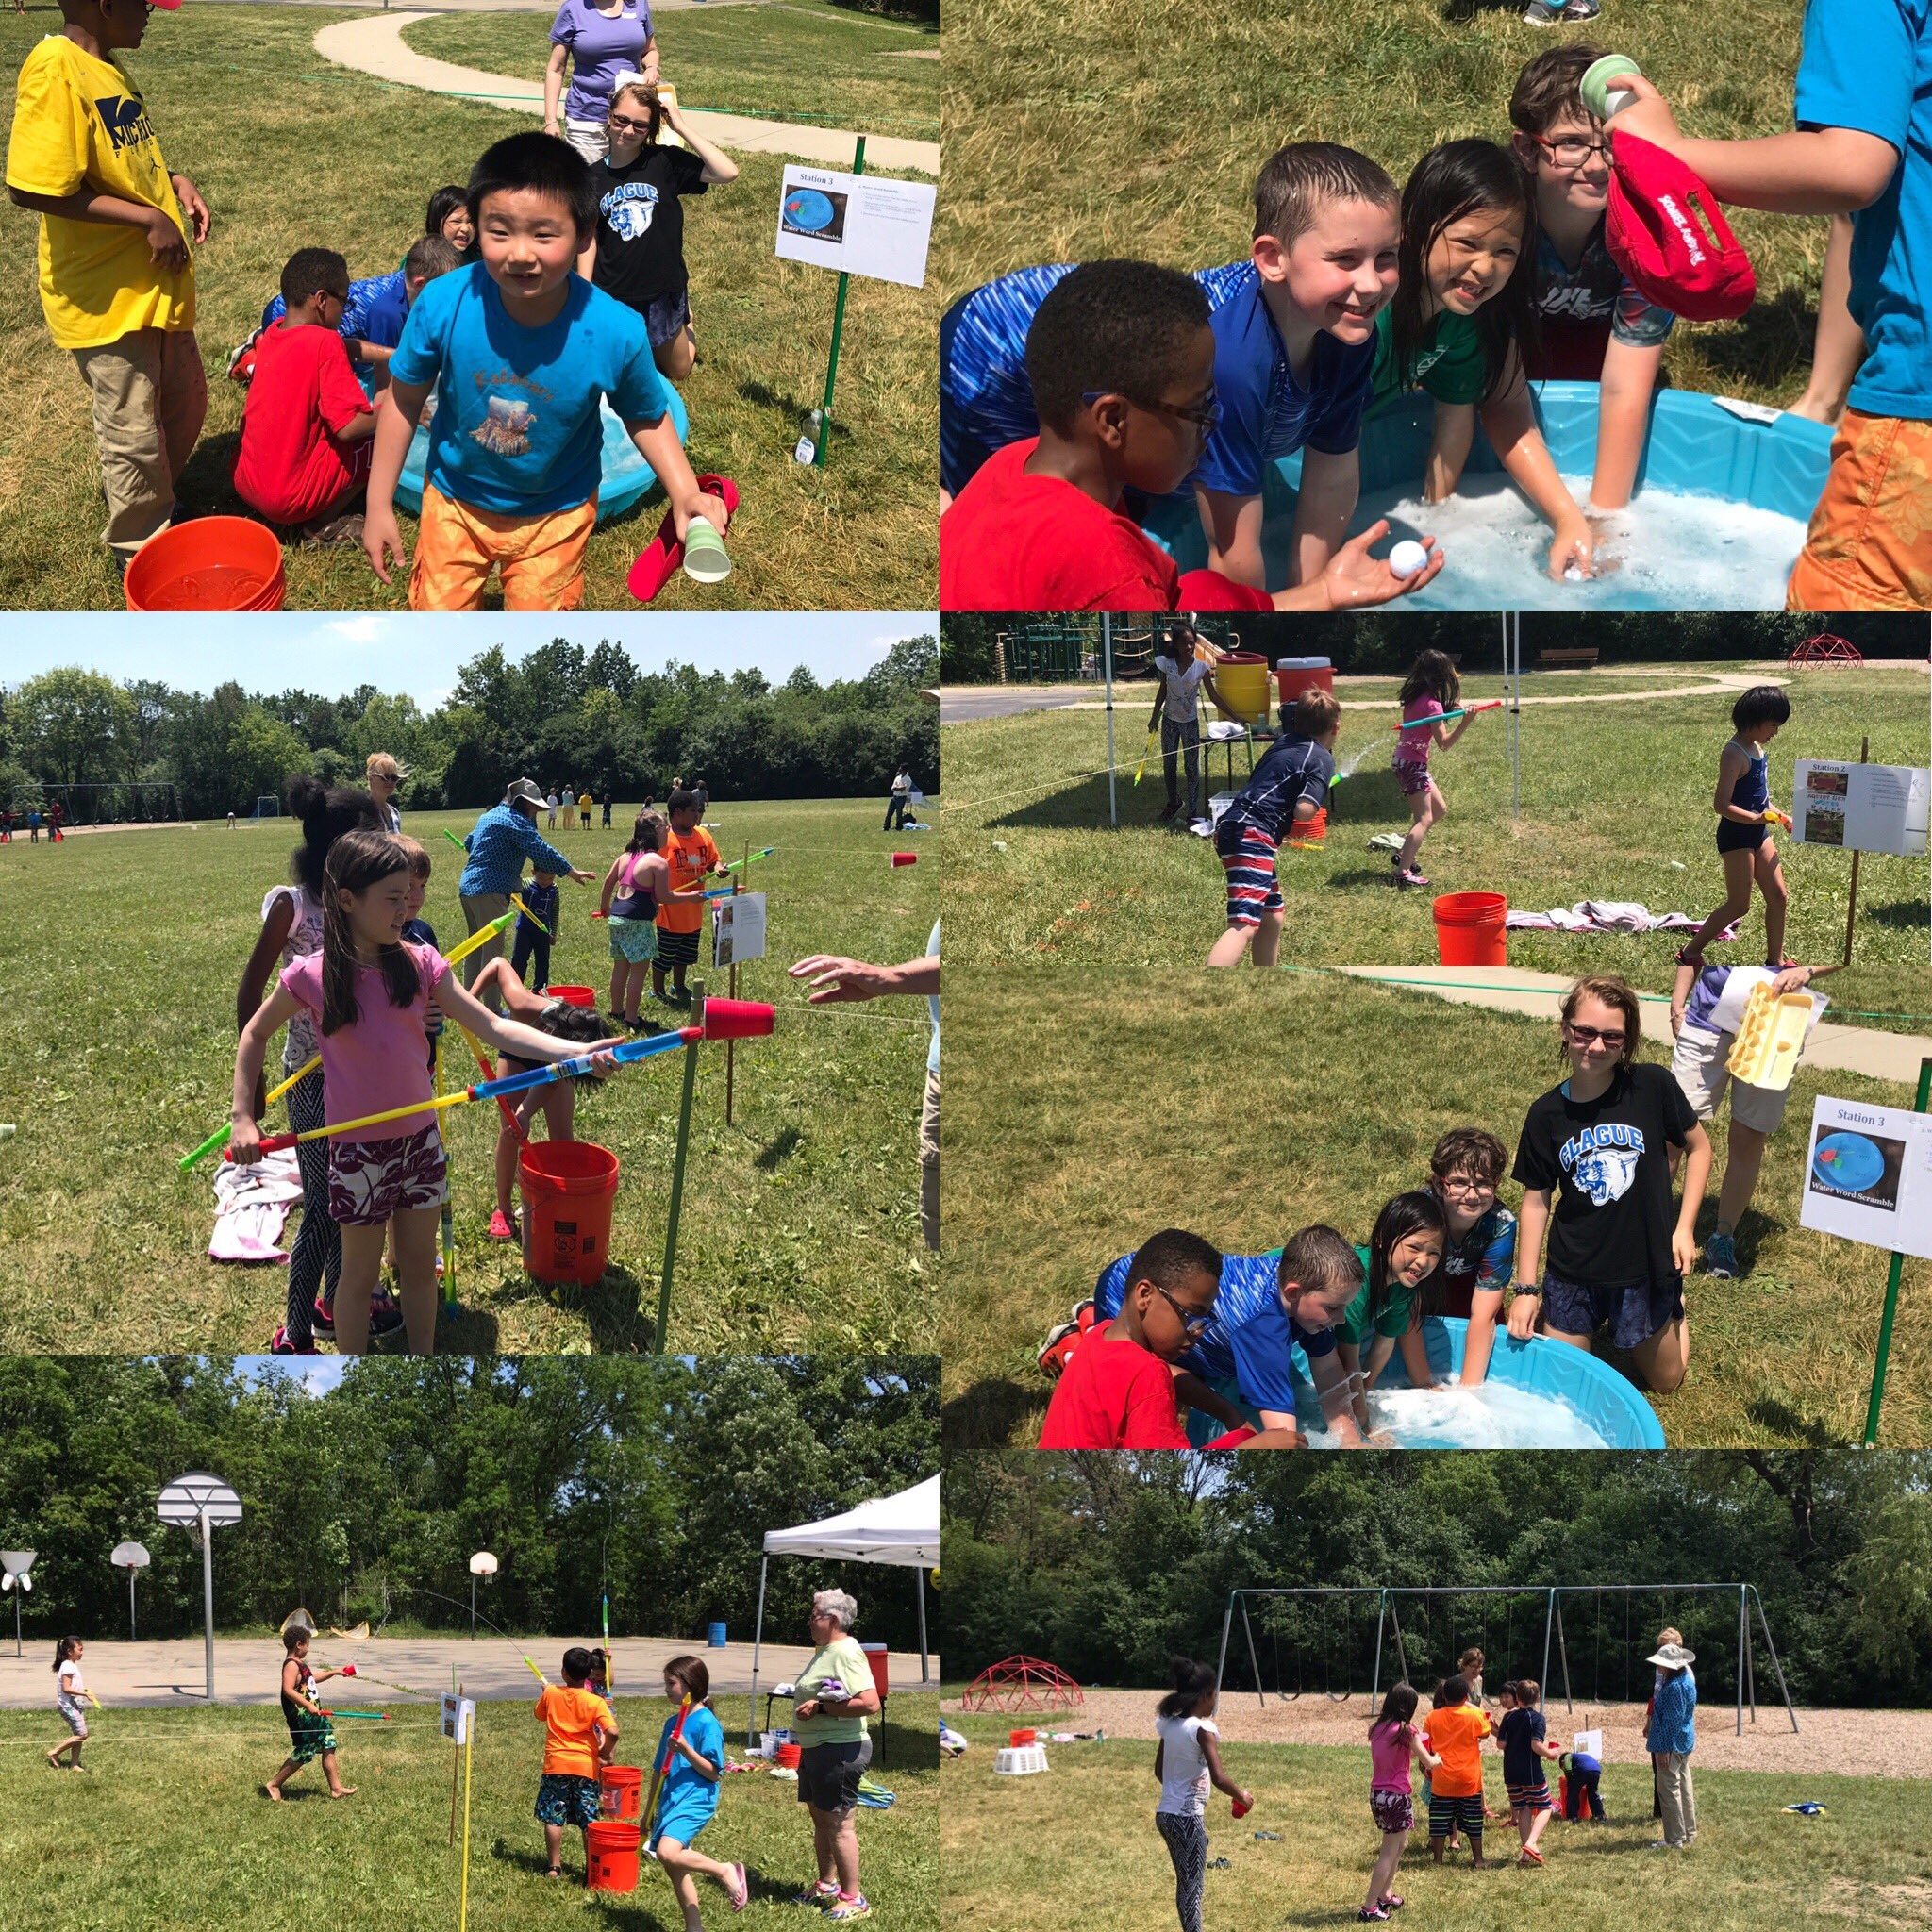 So proud of this amazing group of students @A2_Logan! #A2gether #waterday #AllSmiles https://t.co/BxcOeDokIe